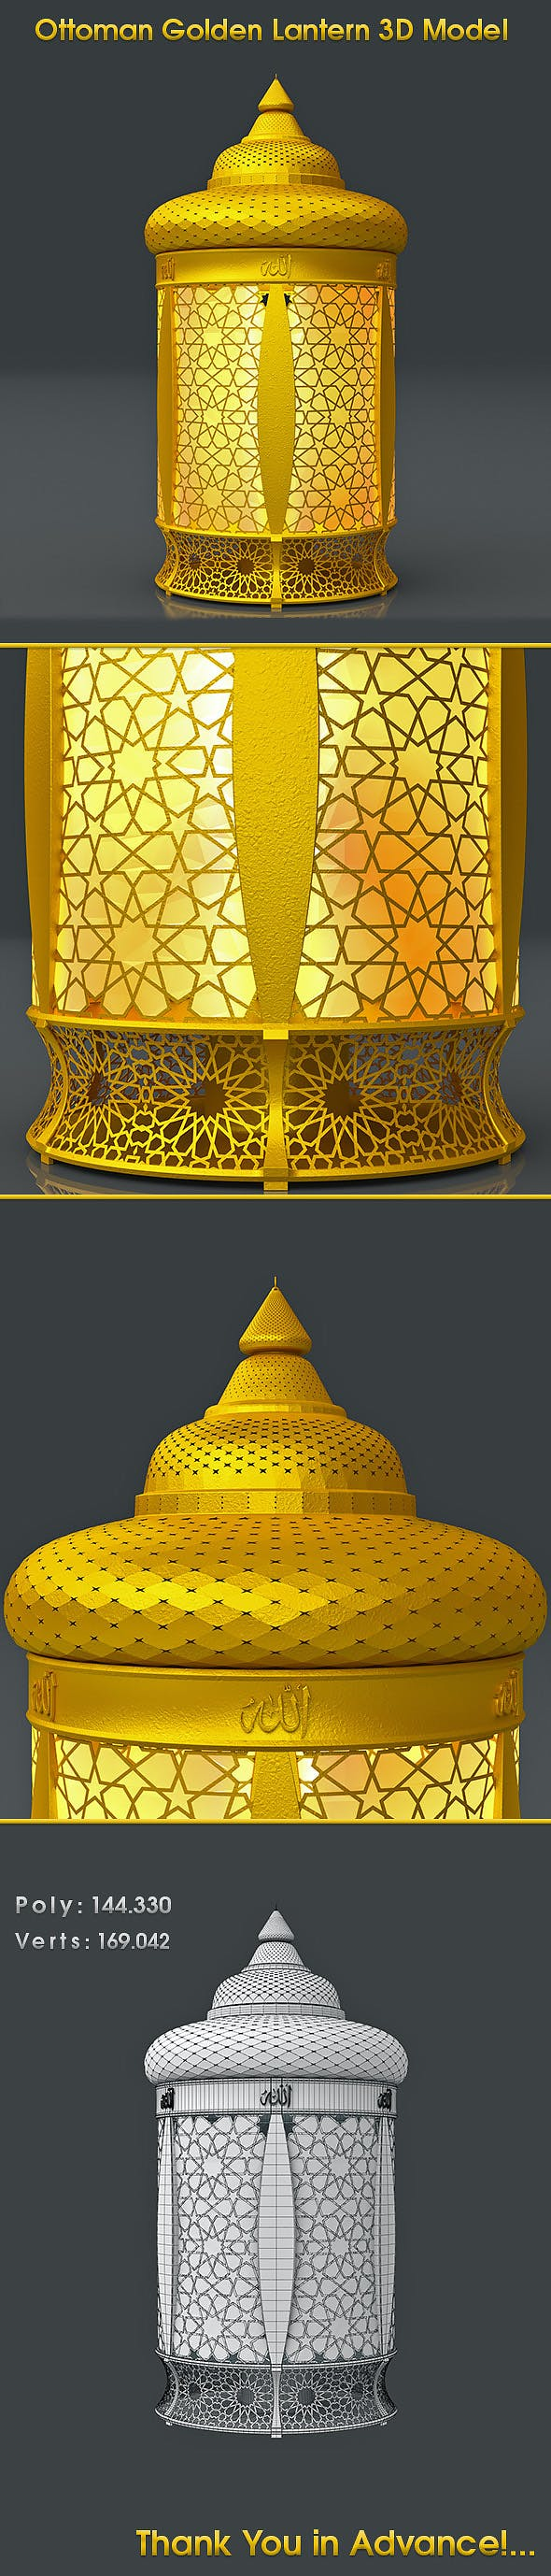 Ottoman Golden Lantern - 3DOcean Item for Sale